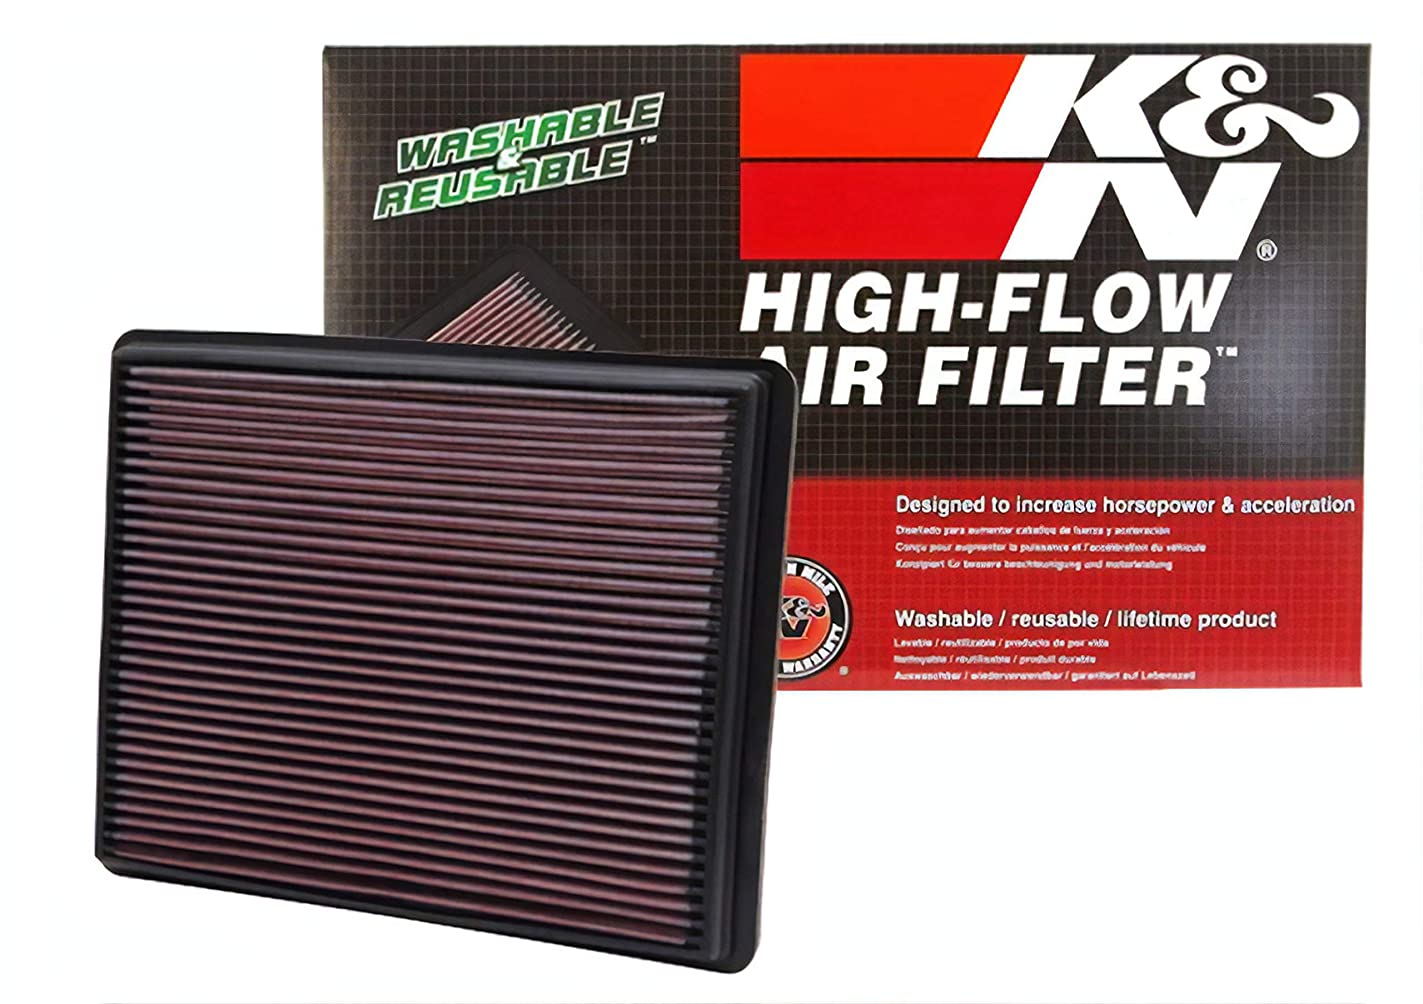 K&N 33-2129 High Performance Replacement Air Filter for 1999-2017 Chevy/GMC Truck V6/V8 yxp18604441